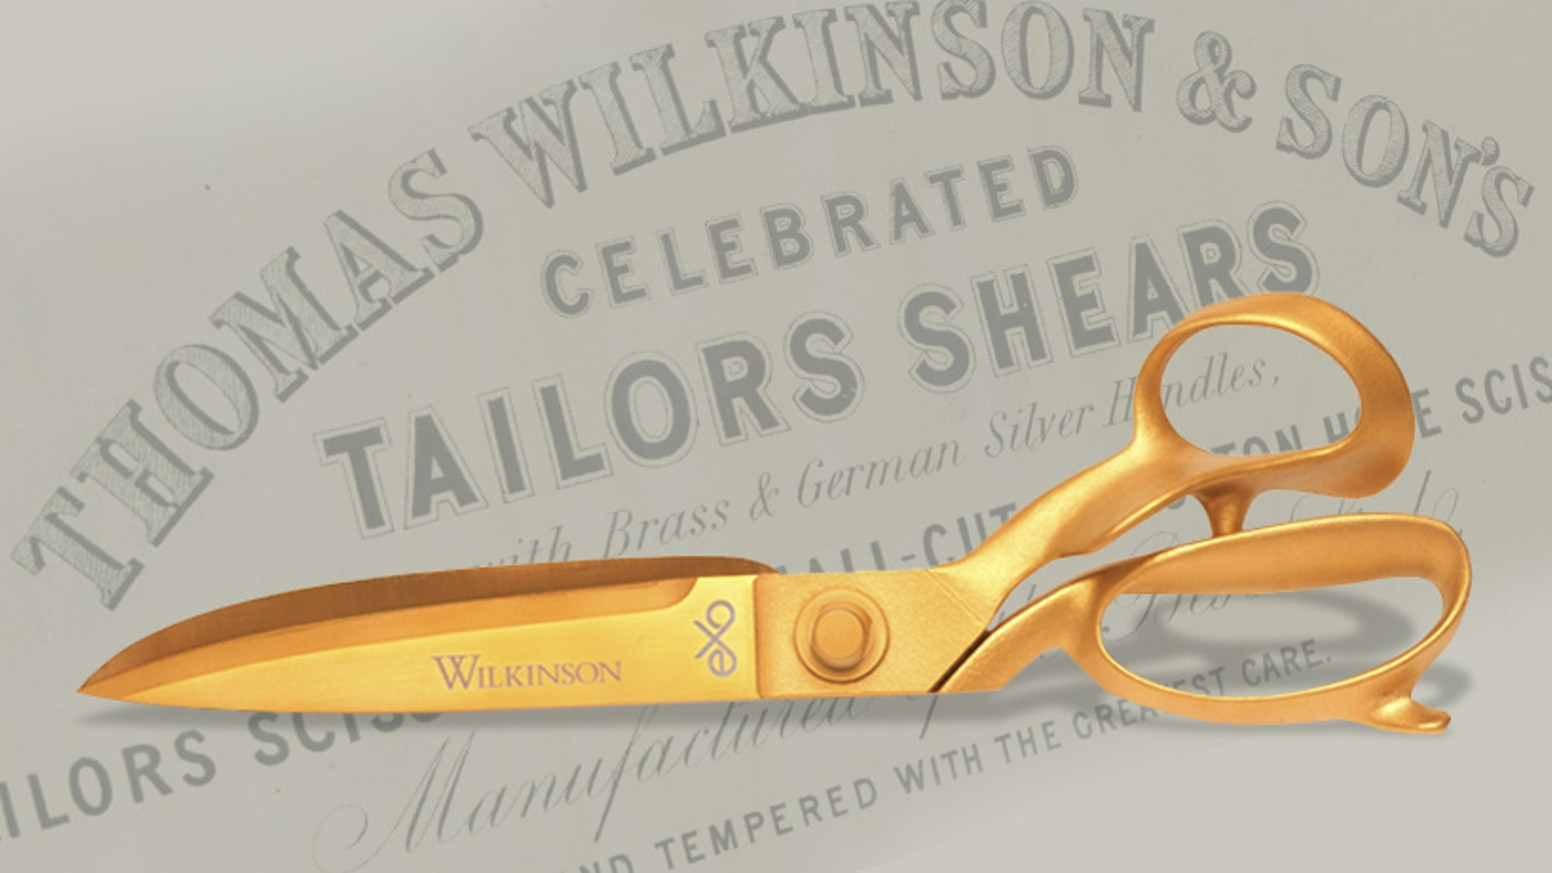 Successfully backed! Groundbreaking new hand-crafted scissors from William Whiteley & Sons, a great British heritage brand. Now available for purchase at www.whiteley.co.uk